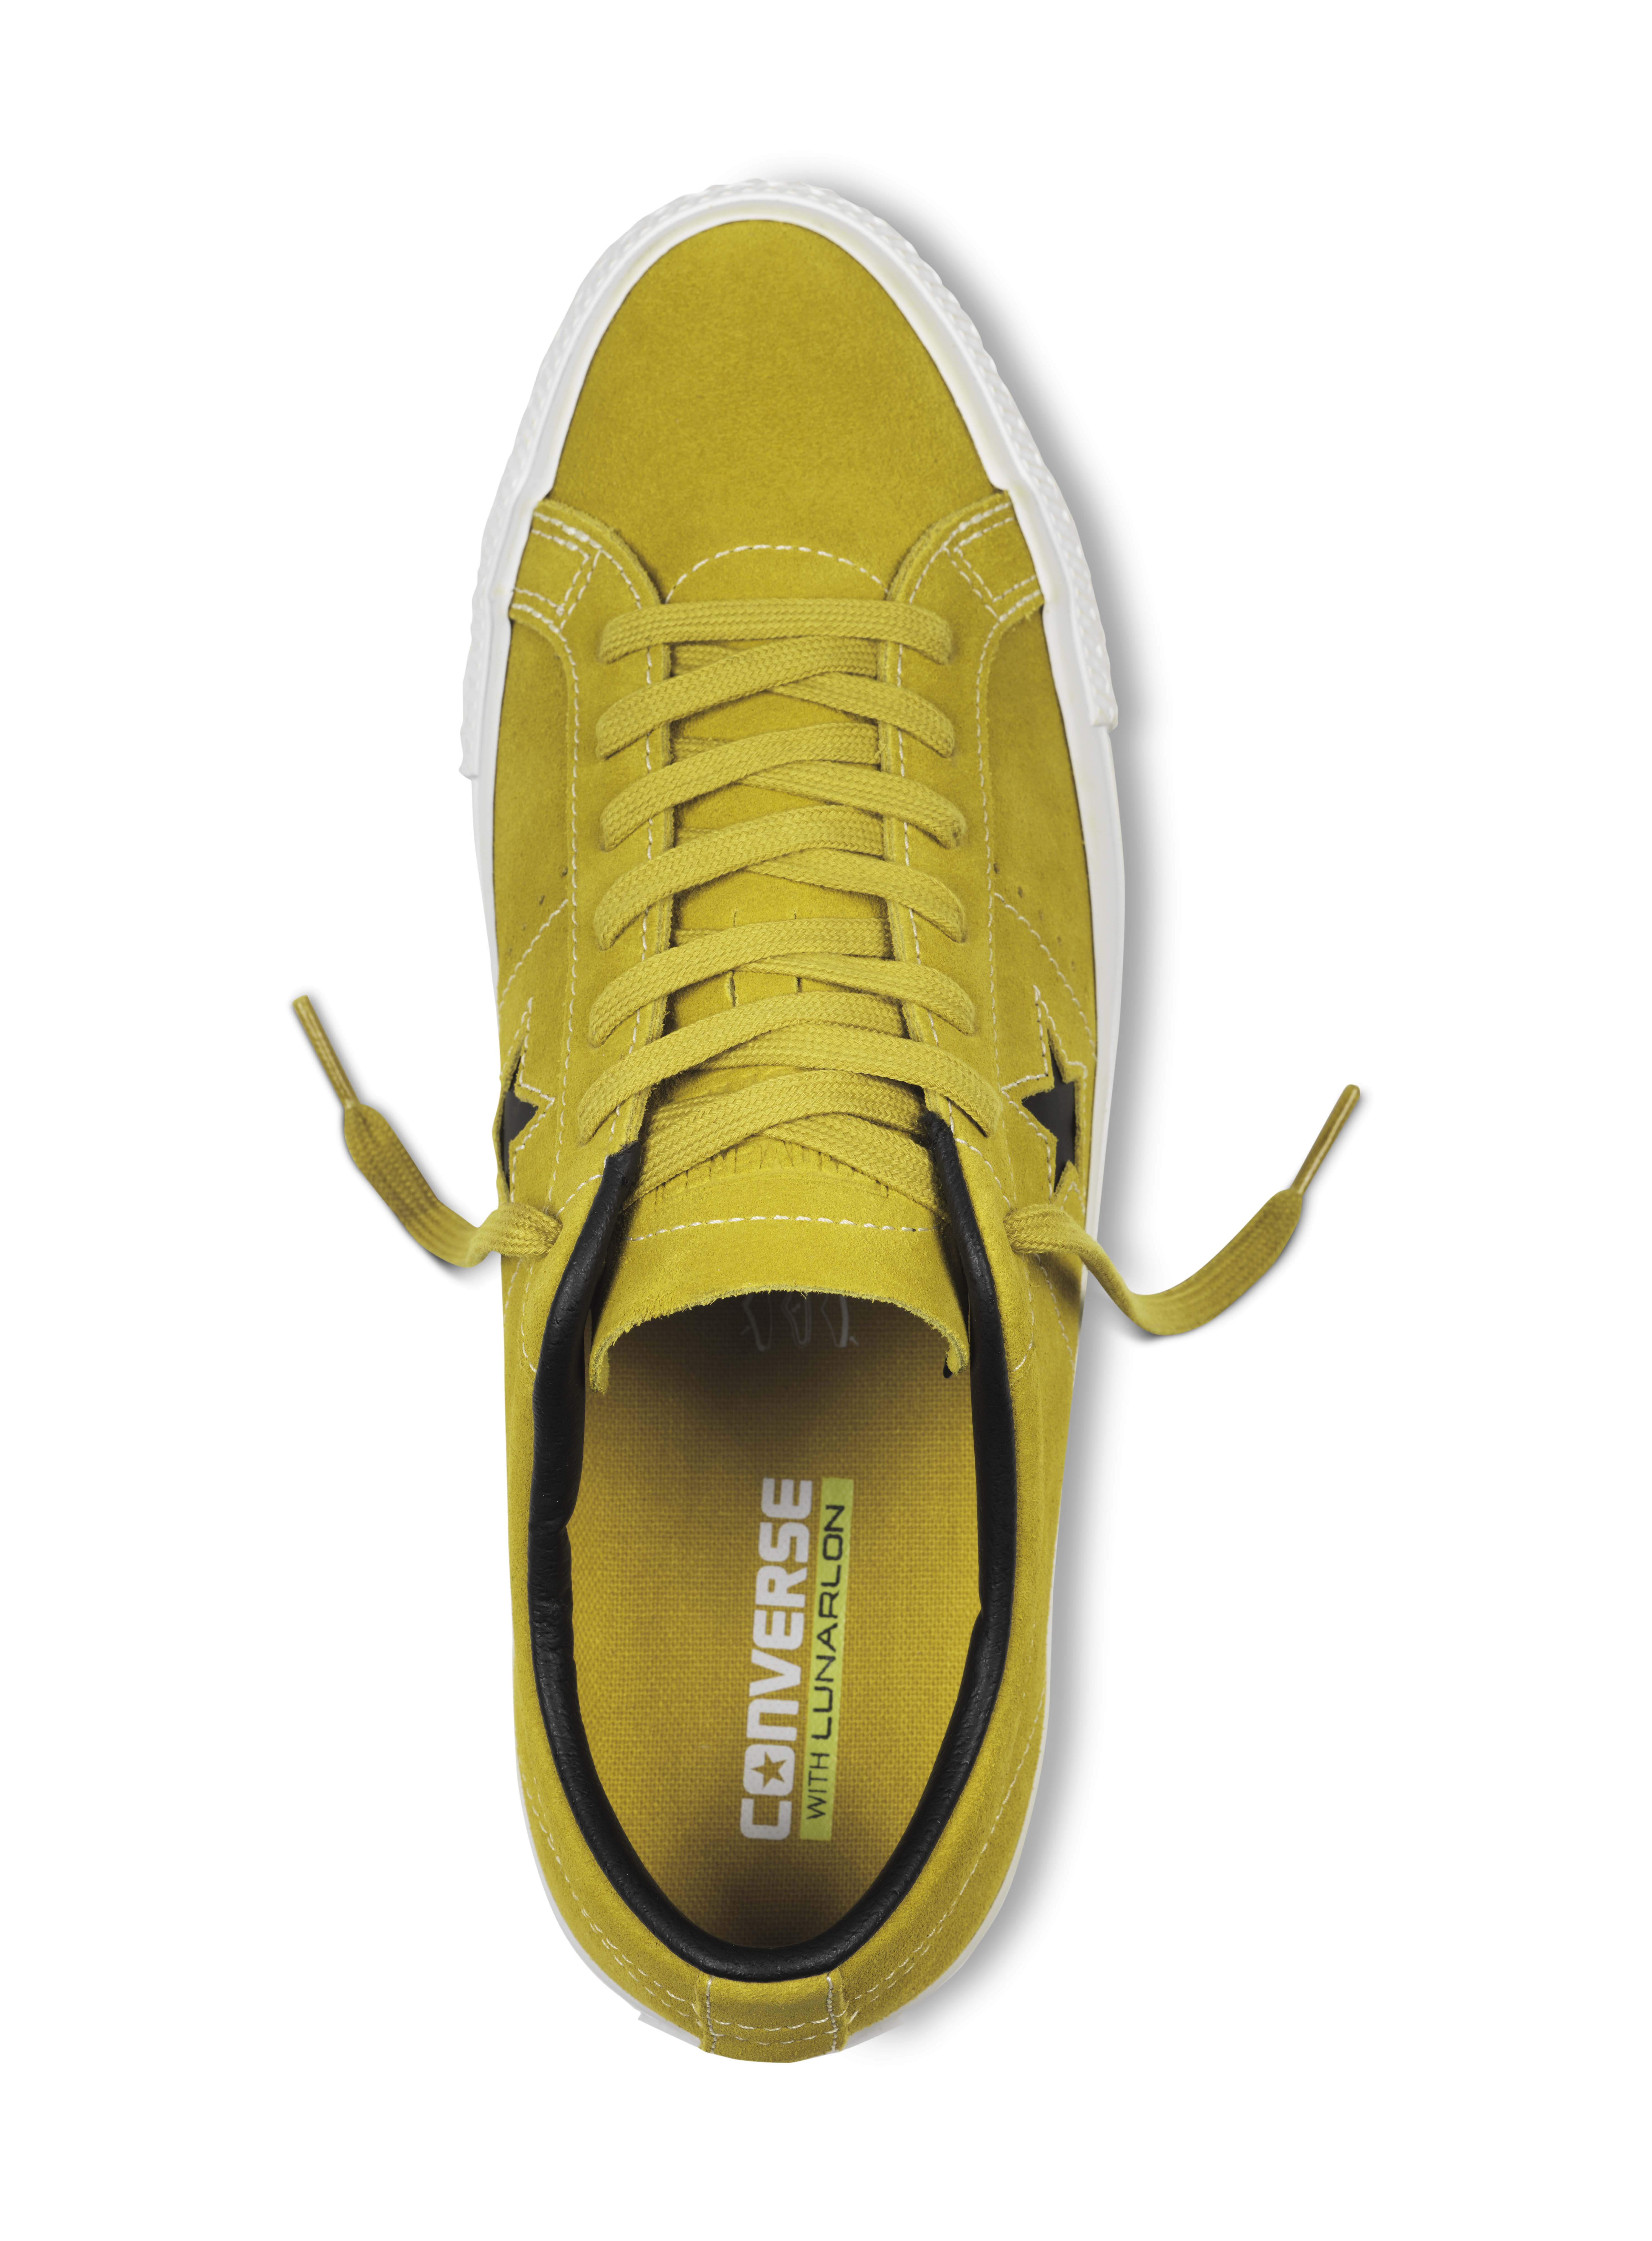 converse one star pro yellow bird